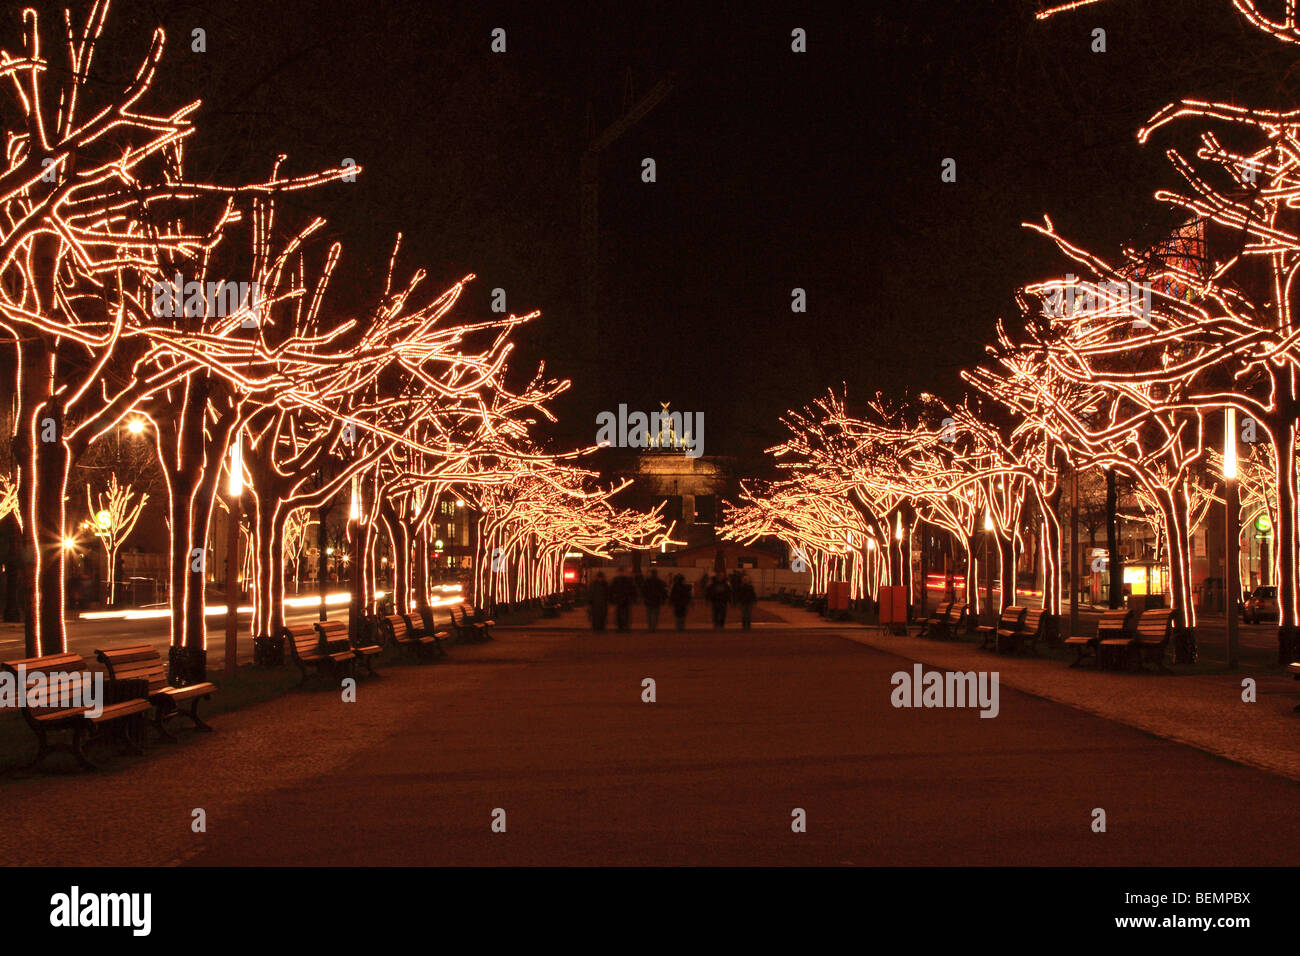 Christmas lights at the boulevard `Unter den Linden' in Berlin, with ...